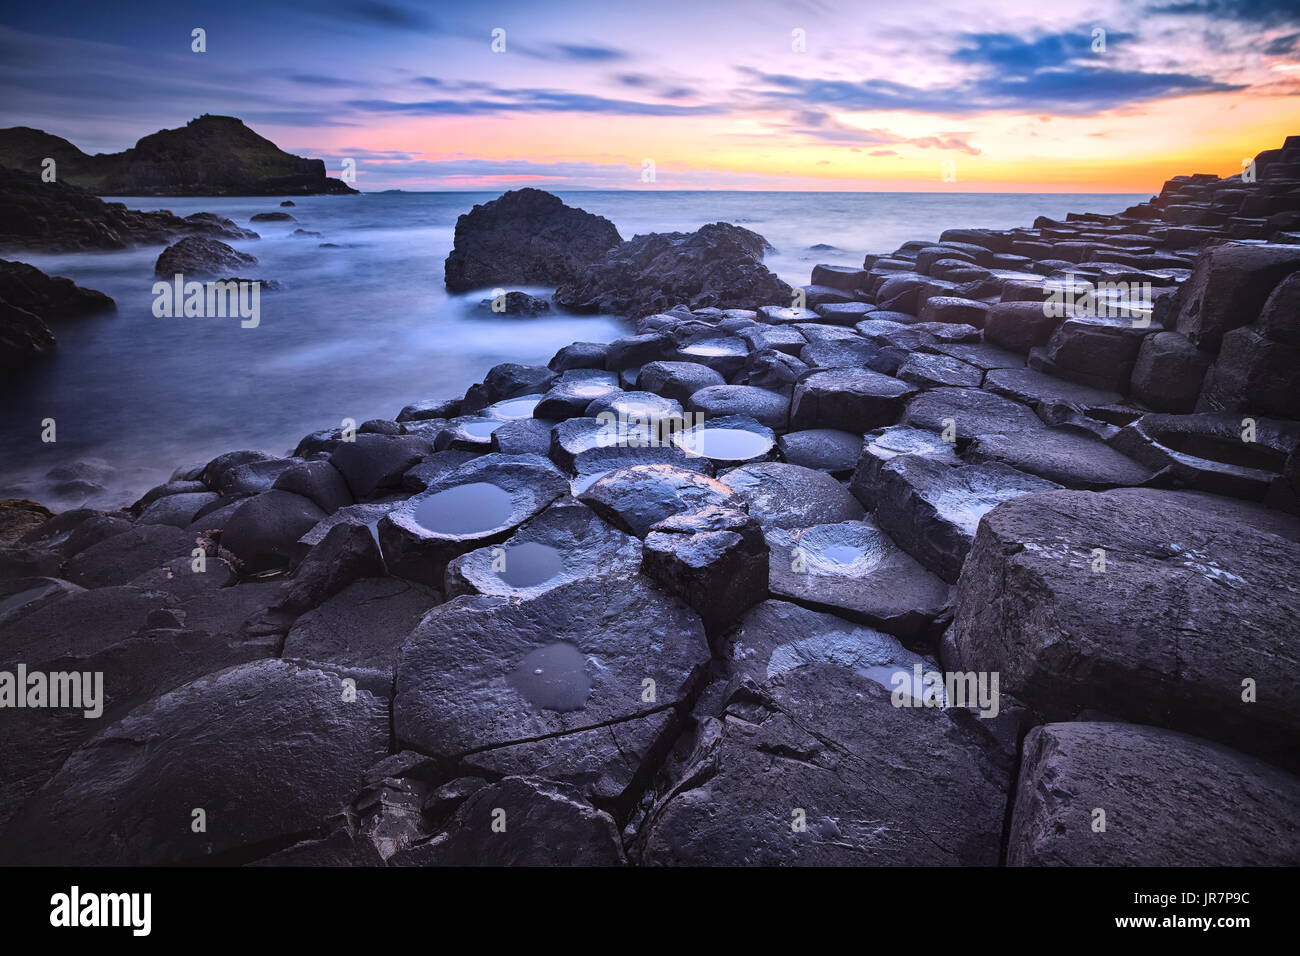 sunset over basalt rocks formation Giant's Causeway, Port Ganny Bay and Great Stookan, County Antrim, Northern - Stock Image